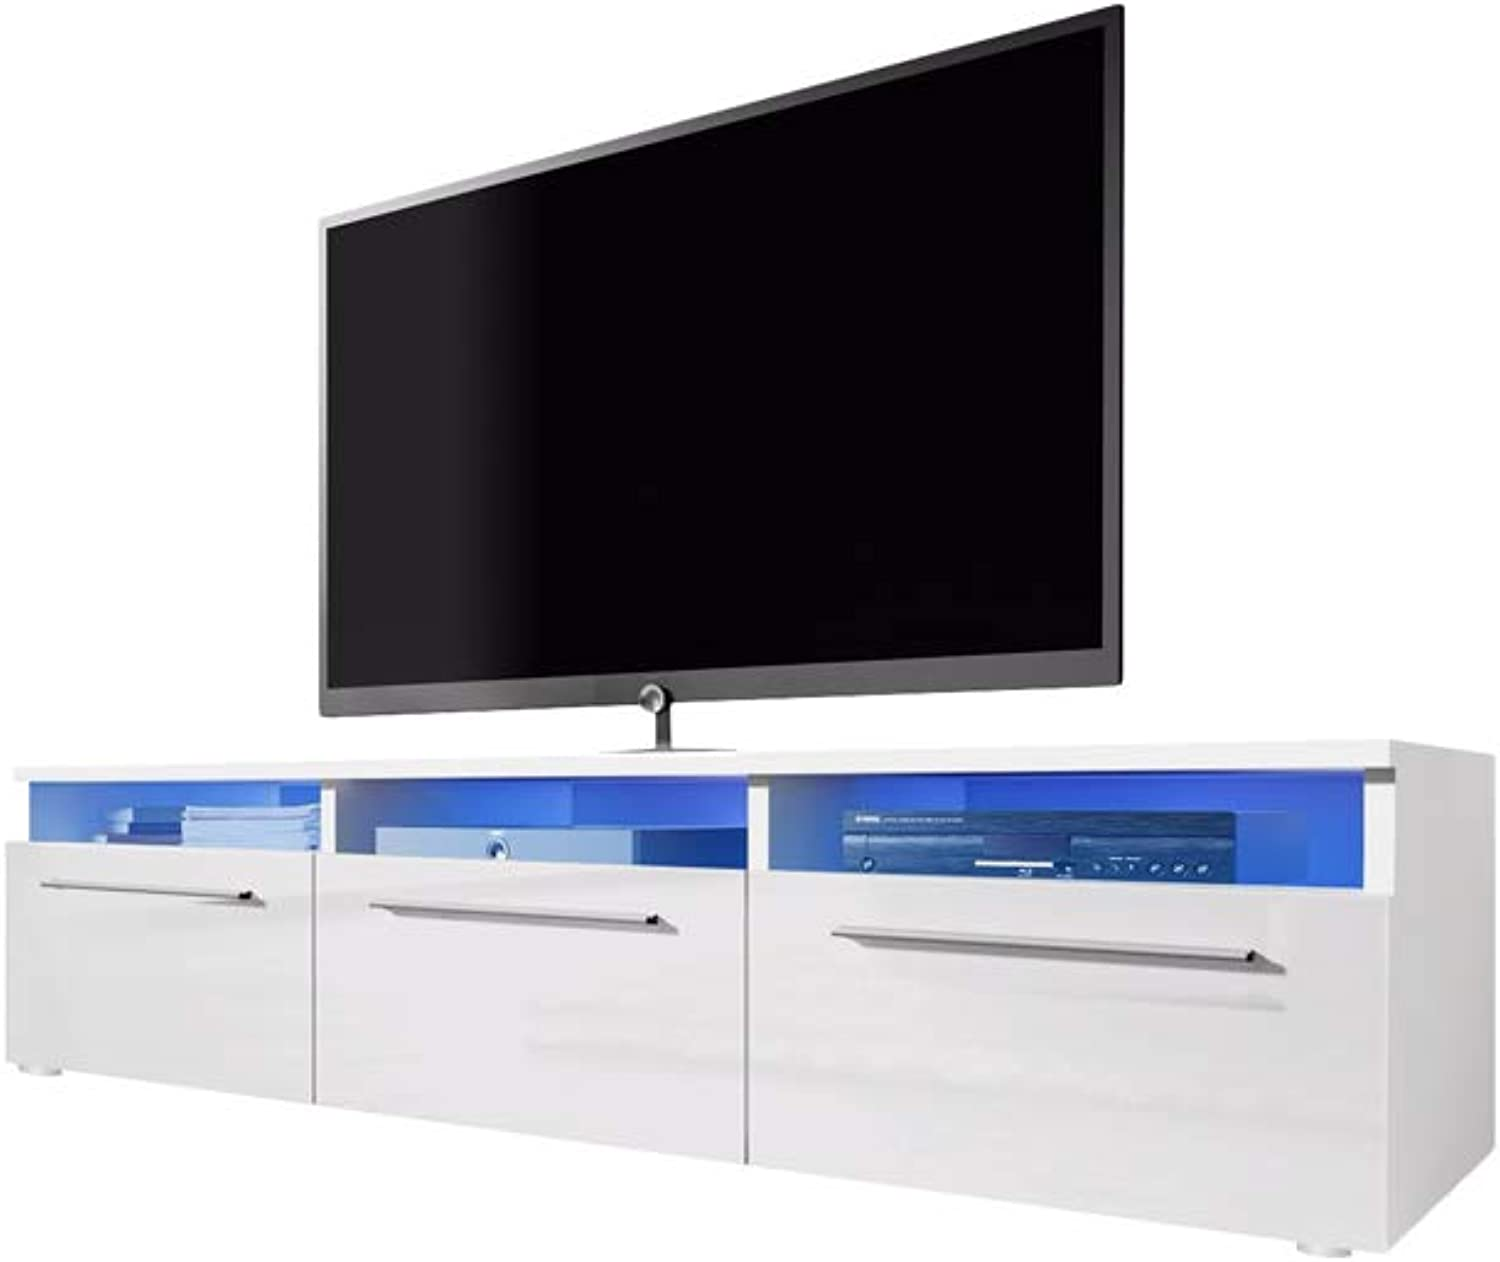 Selsey Selsey Selsey Lavello Tv Lowboard Tv Schrank Mit